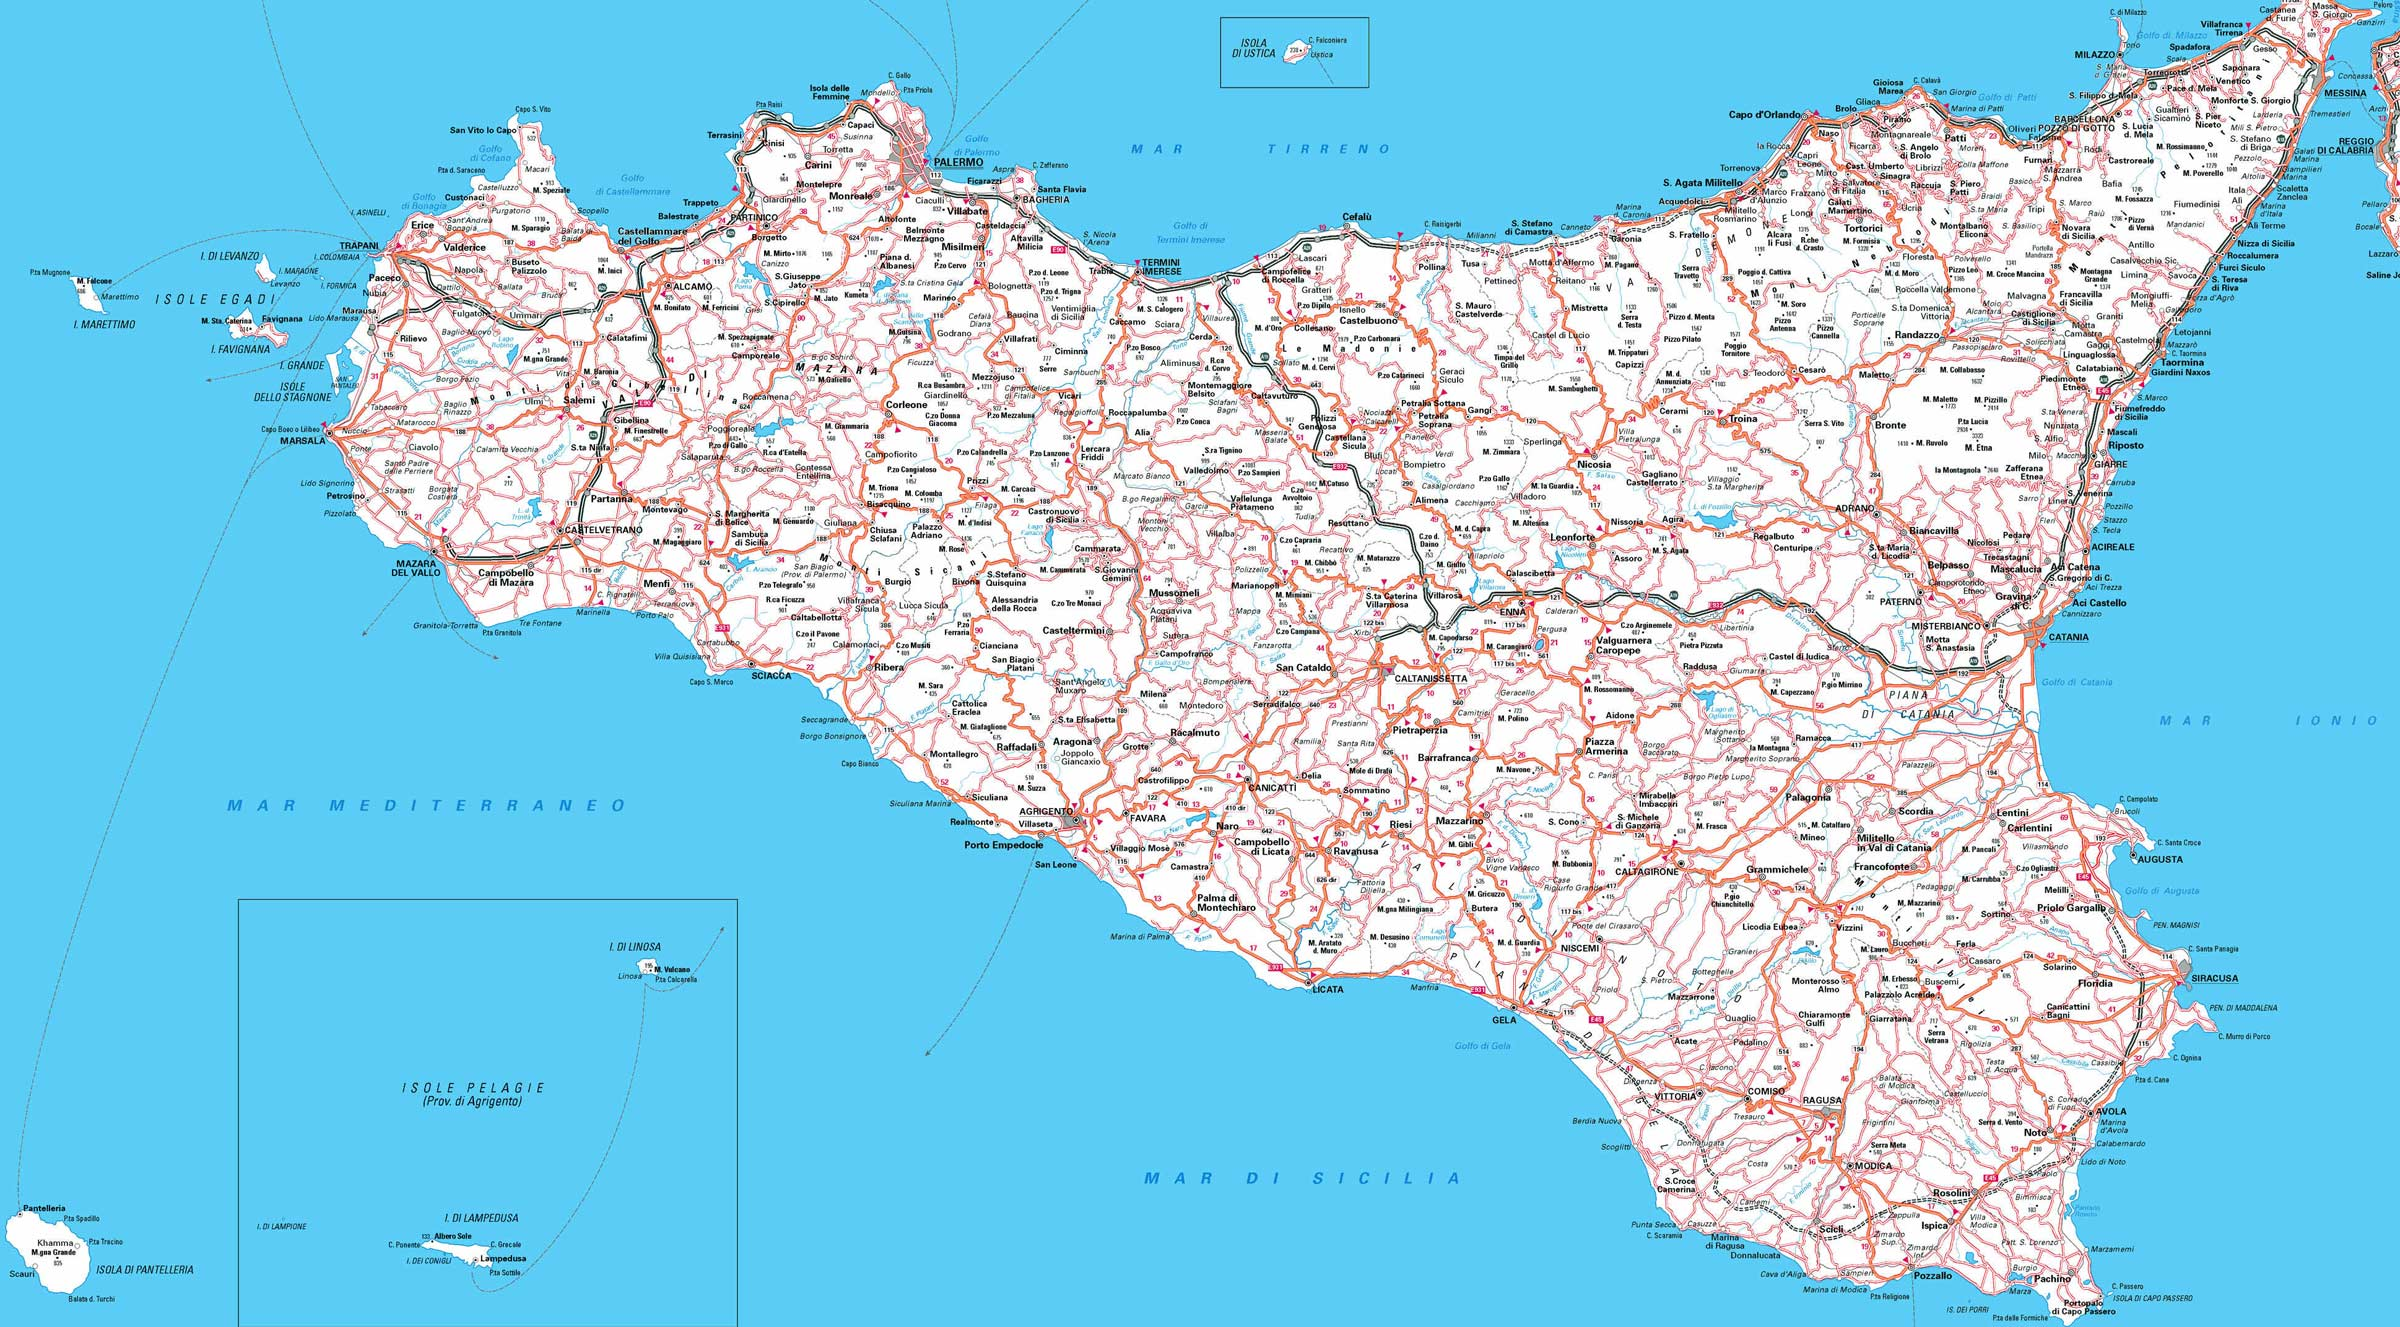 Sicily Map Detailed • Mapsof.net